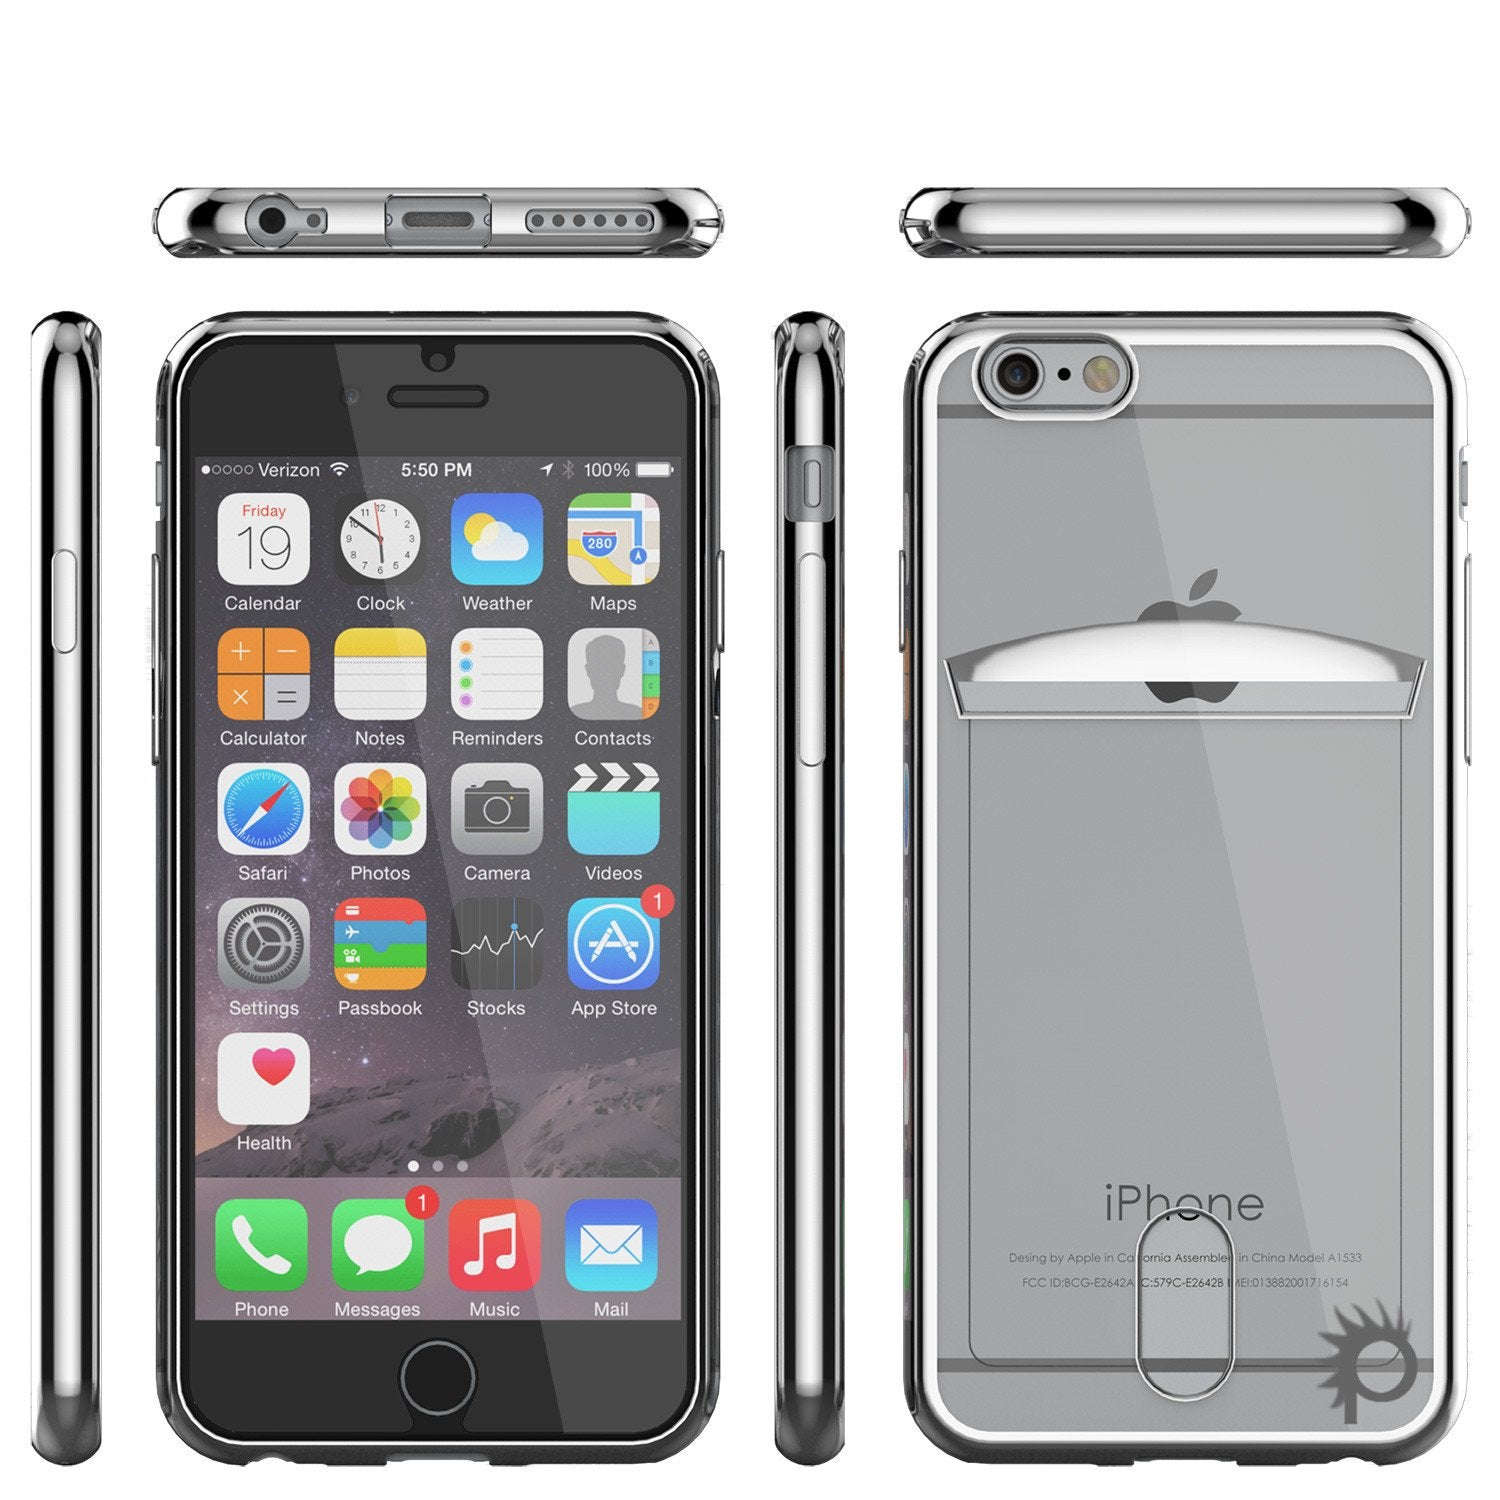 iPhone 6s+ Plus/6+ Plus Case, PUNKCASE® LUCID Silver Series | Card Slot | SHIELD Screen Protector - PunkCase NZ